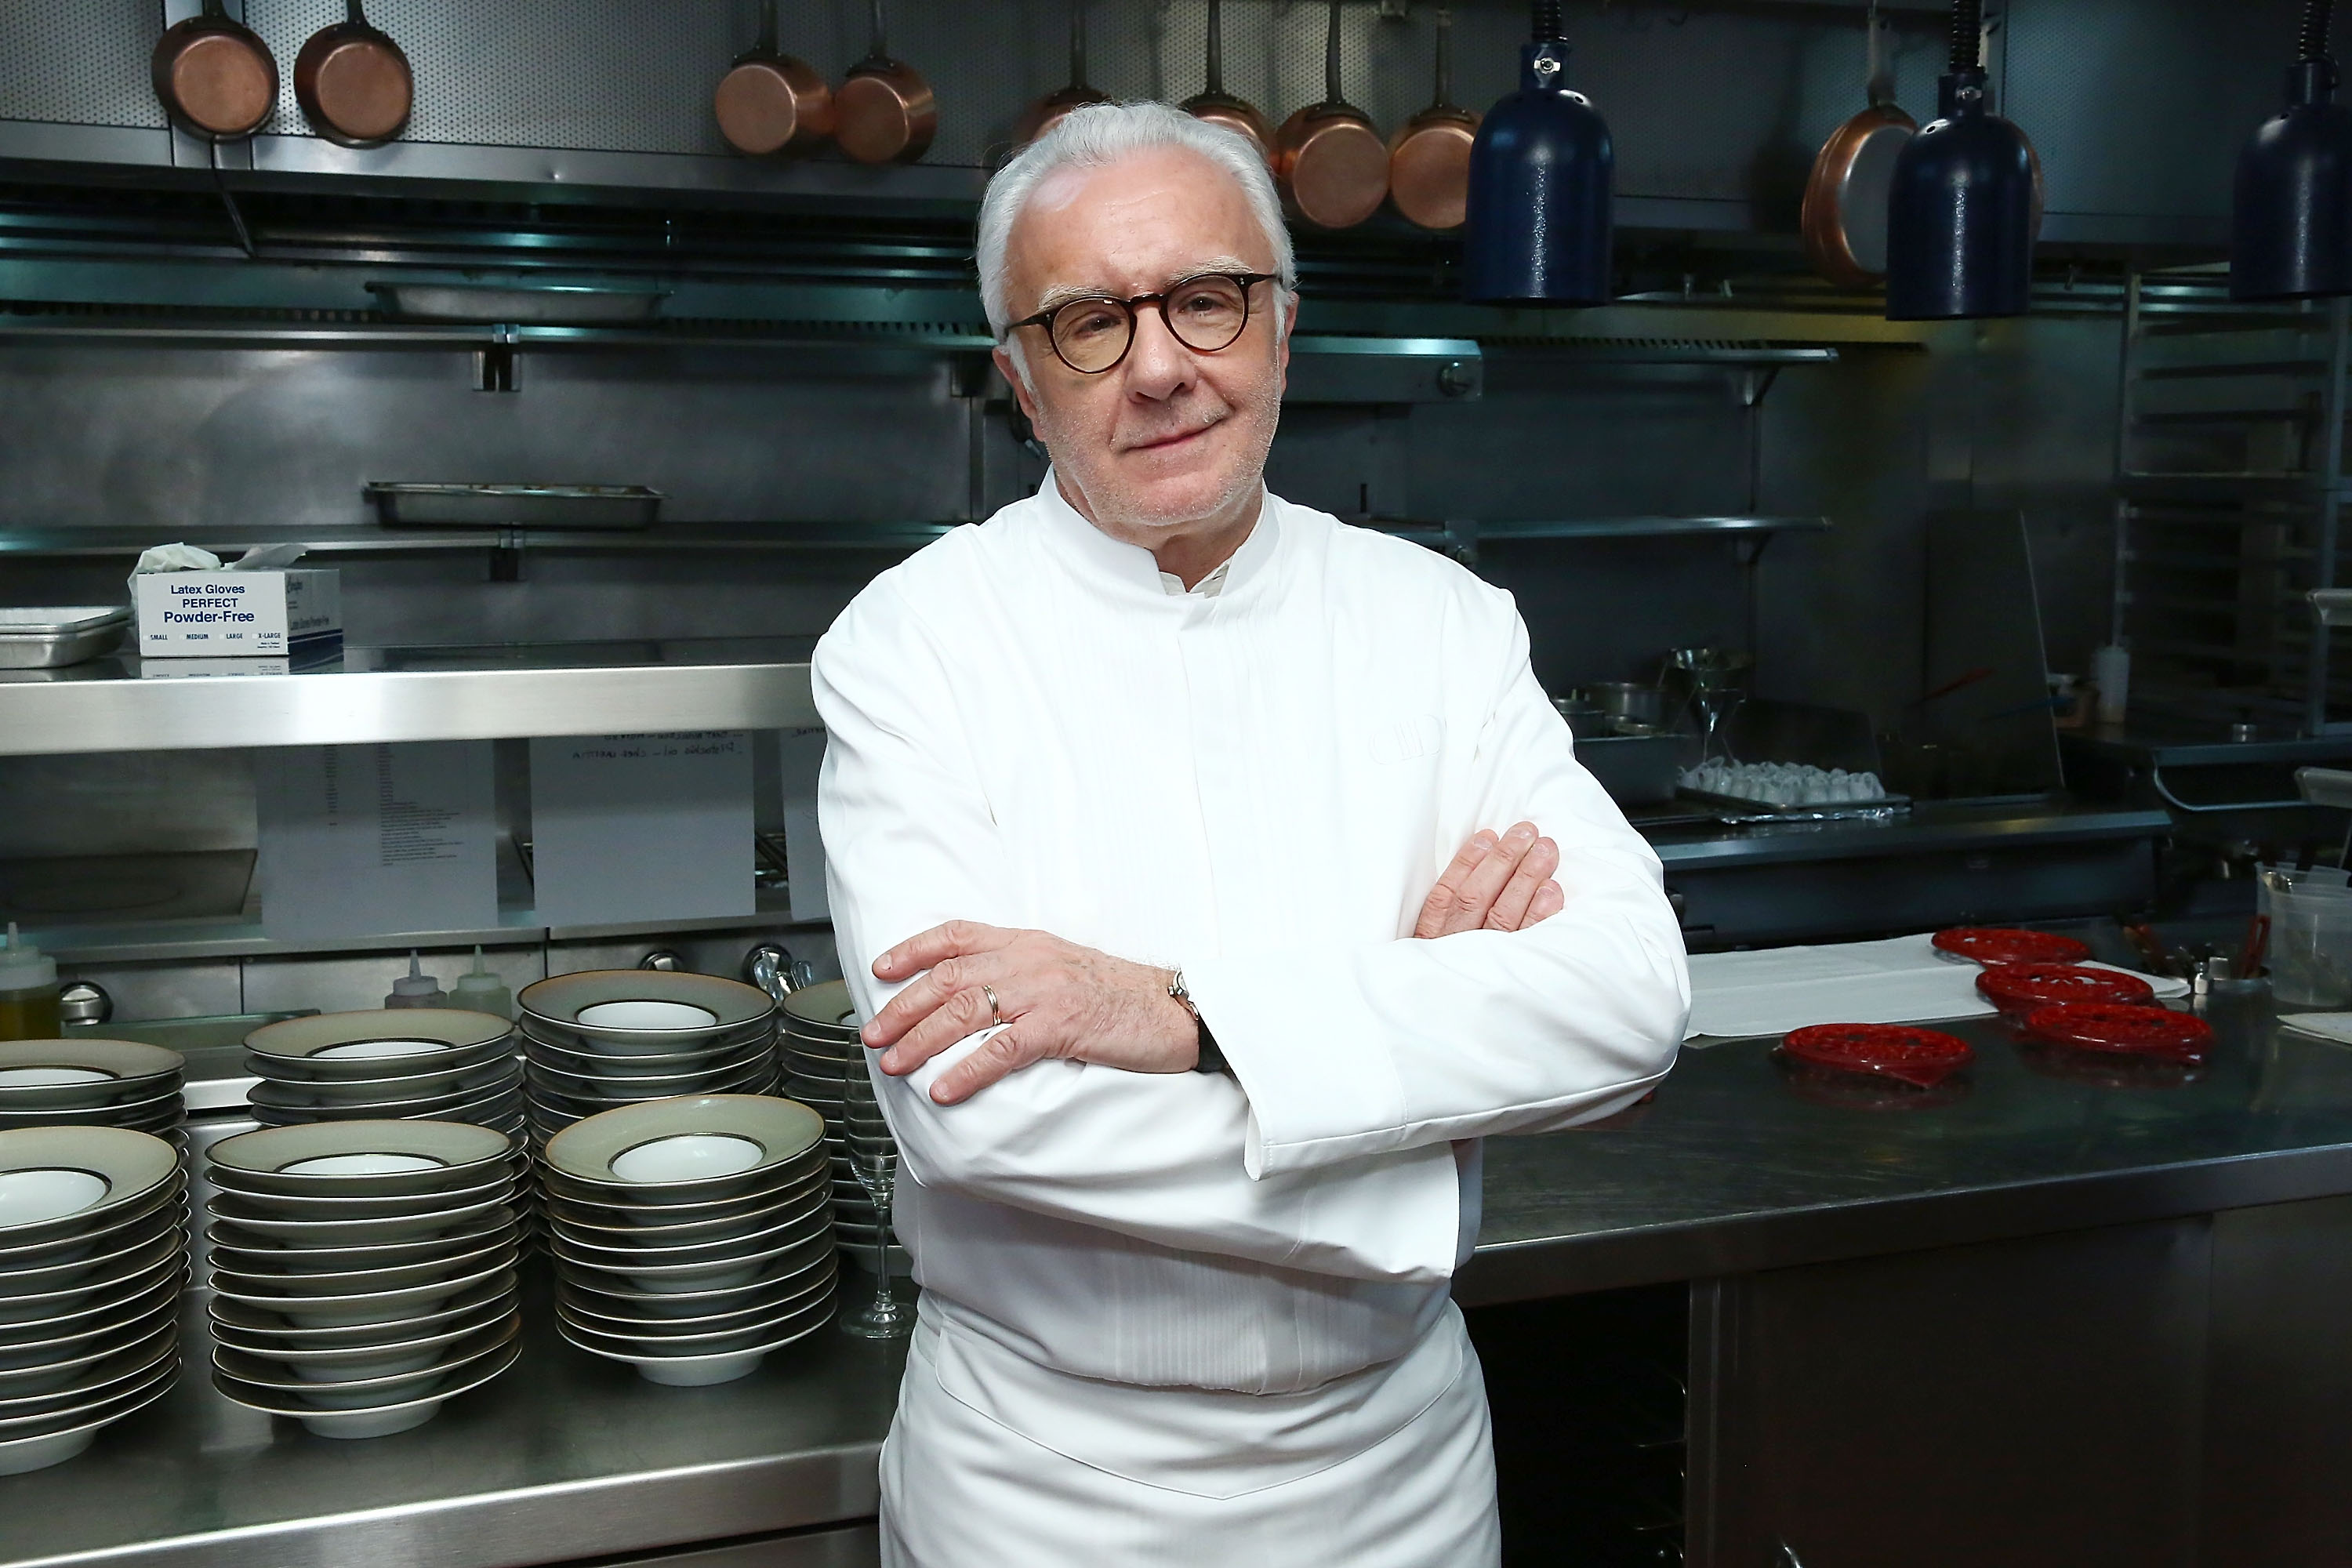 Food Network & Cooking Channel New York City Wine & Food Festival Presented By Coca-Cola - Alain Ducasse Hosts A Celebration of Women in the Kitchen part of the Bank of America Dinner Series presented by The Wall Street Journal